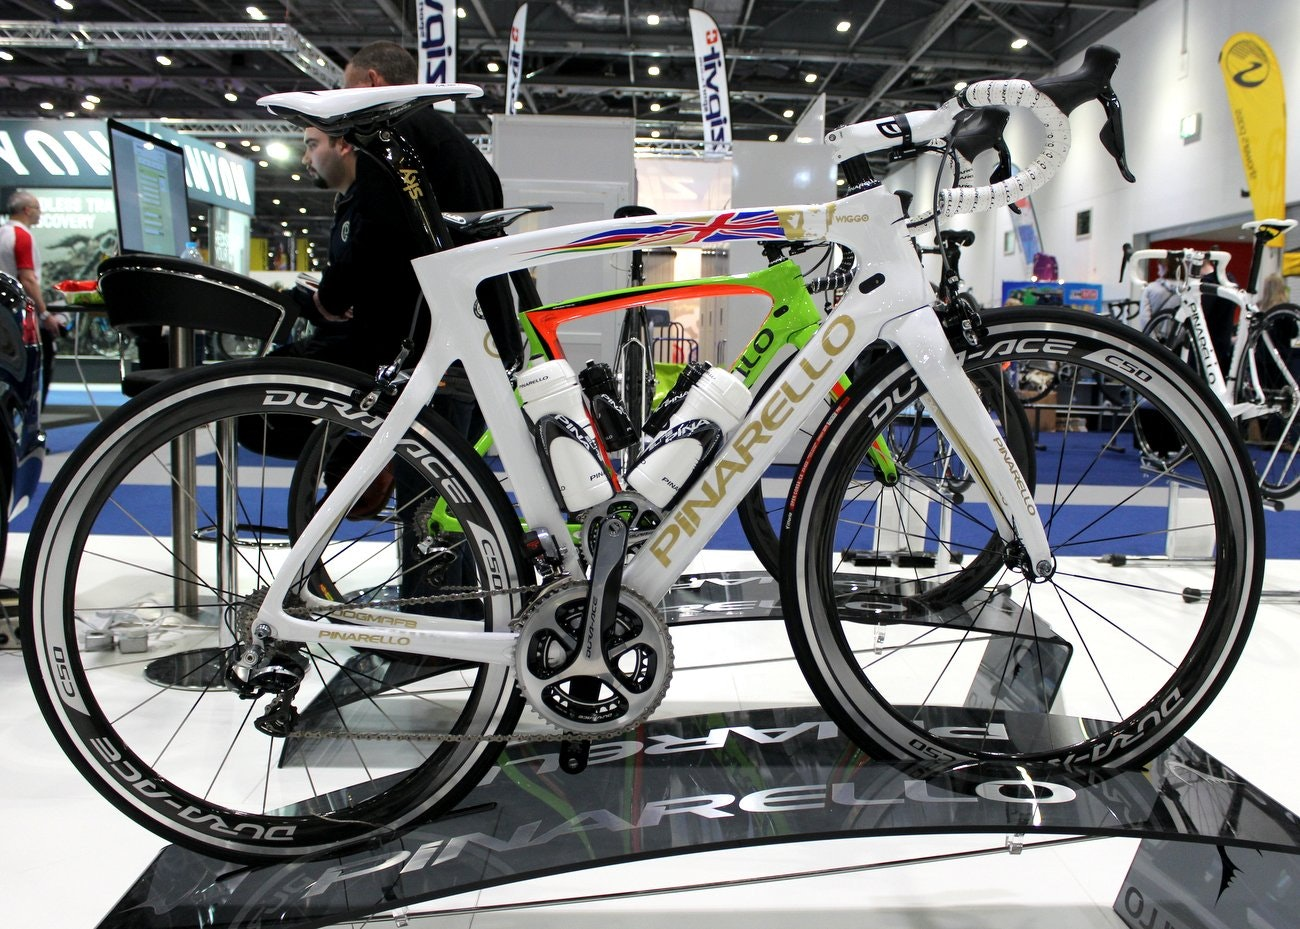 London Bike Show 2015: 'Wiggo' Pinarello Dogma F8 (Pic: George Scott/Factory Media)